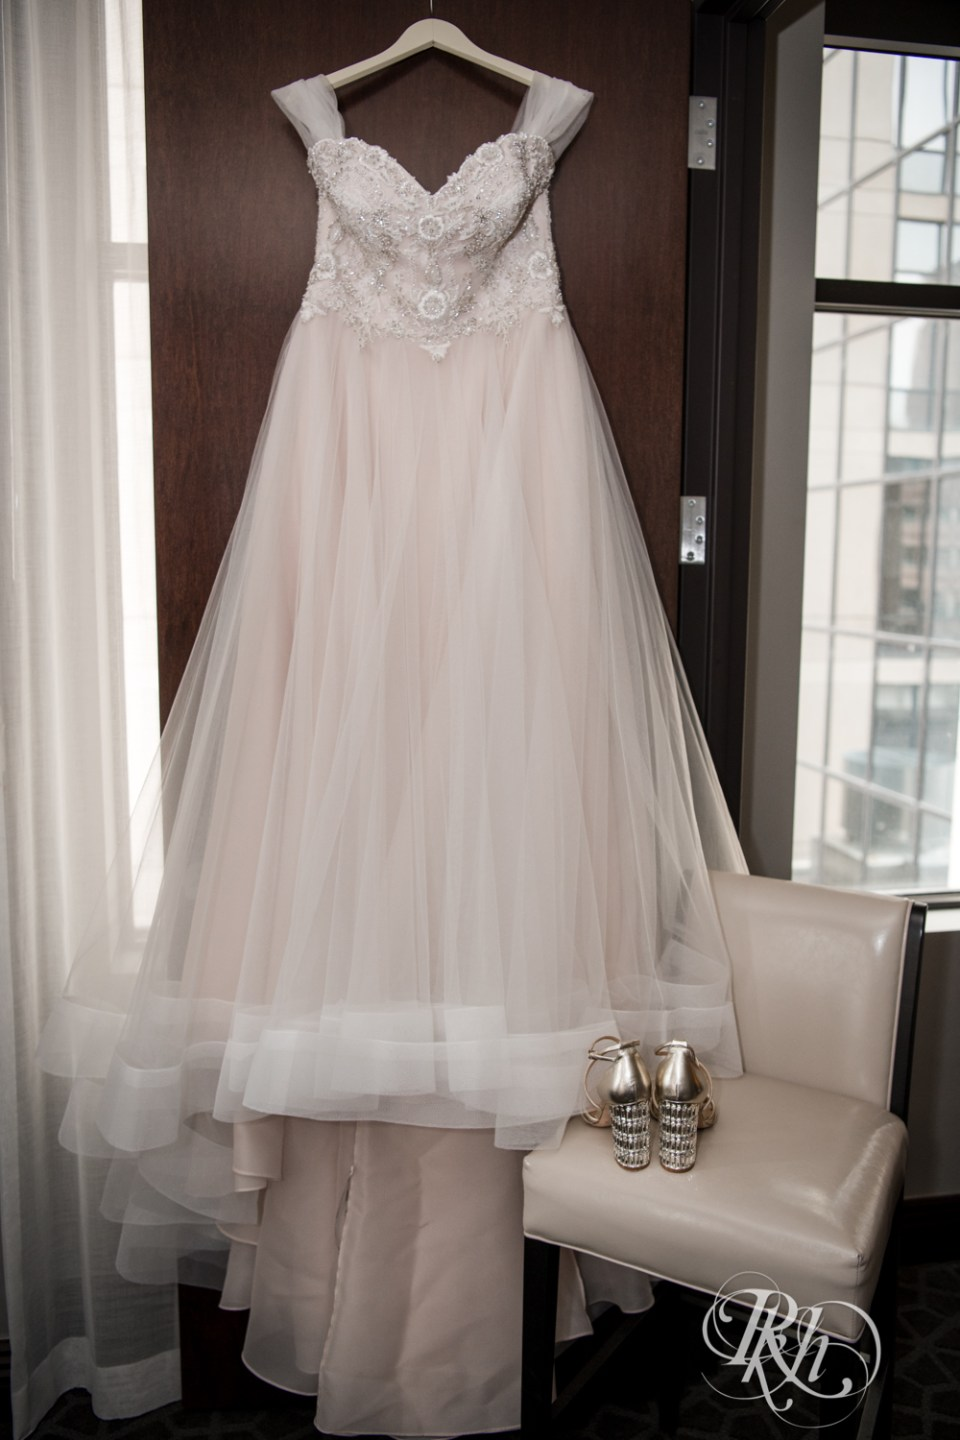 fairy tale dress and shoes